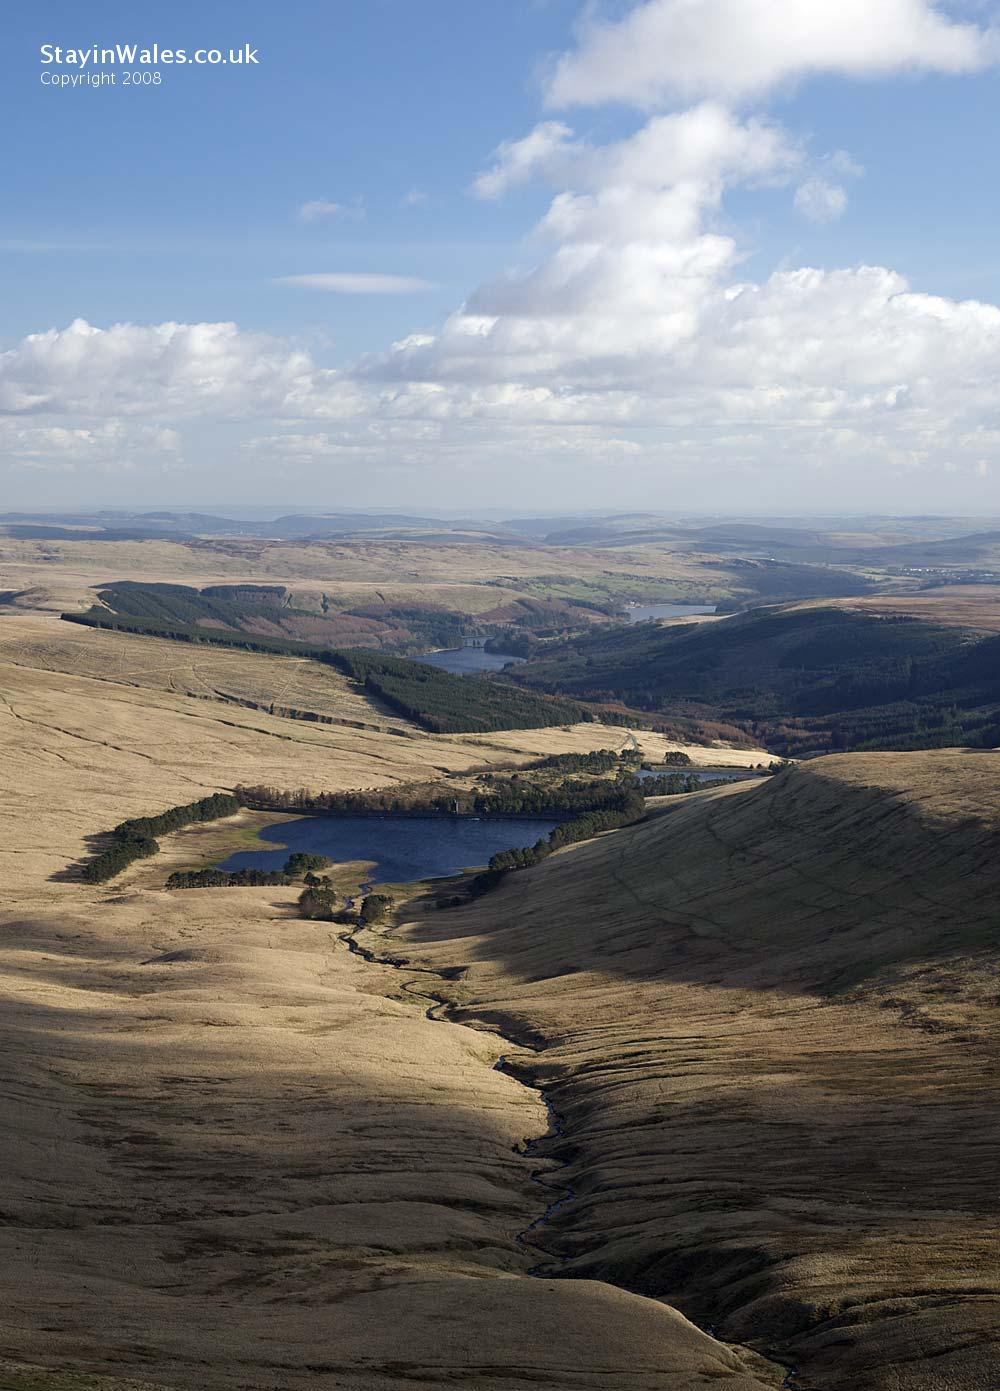 Reservoirs in the Brecon Beacons